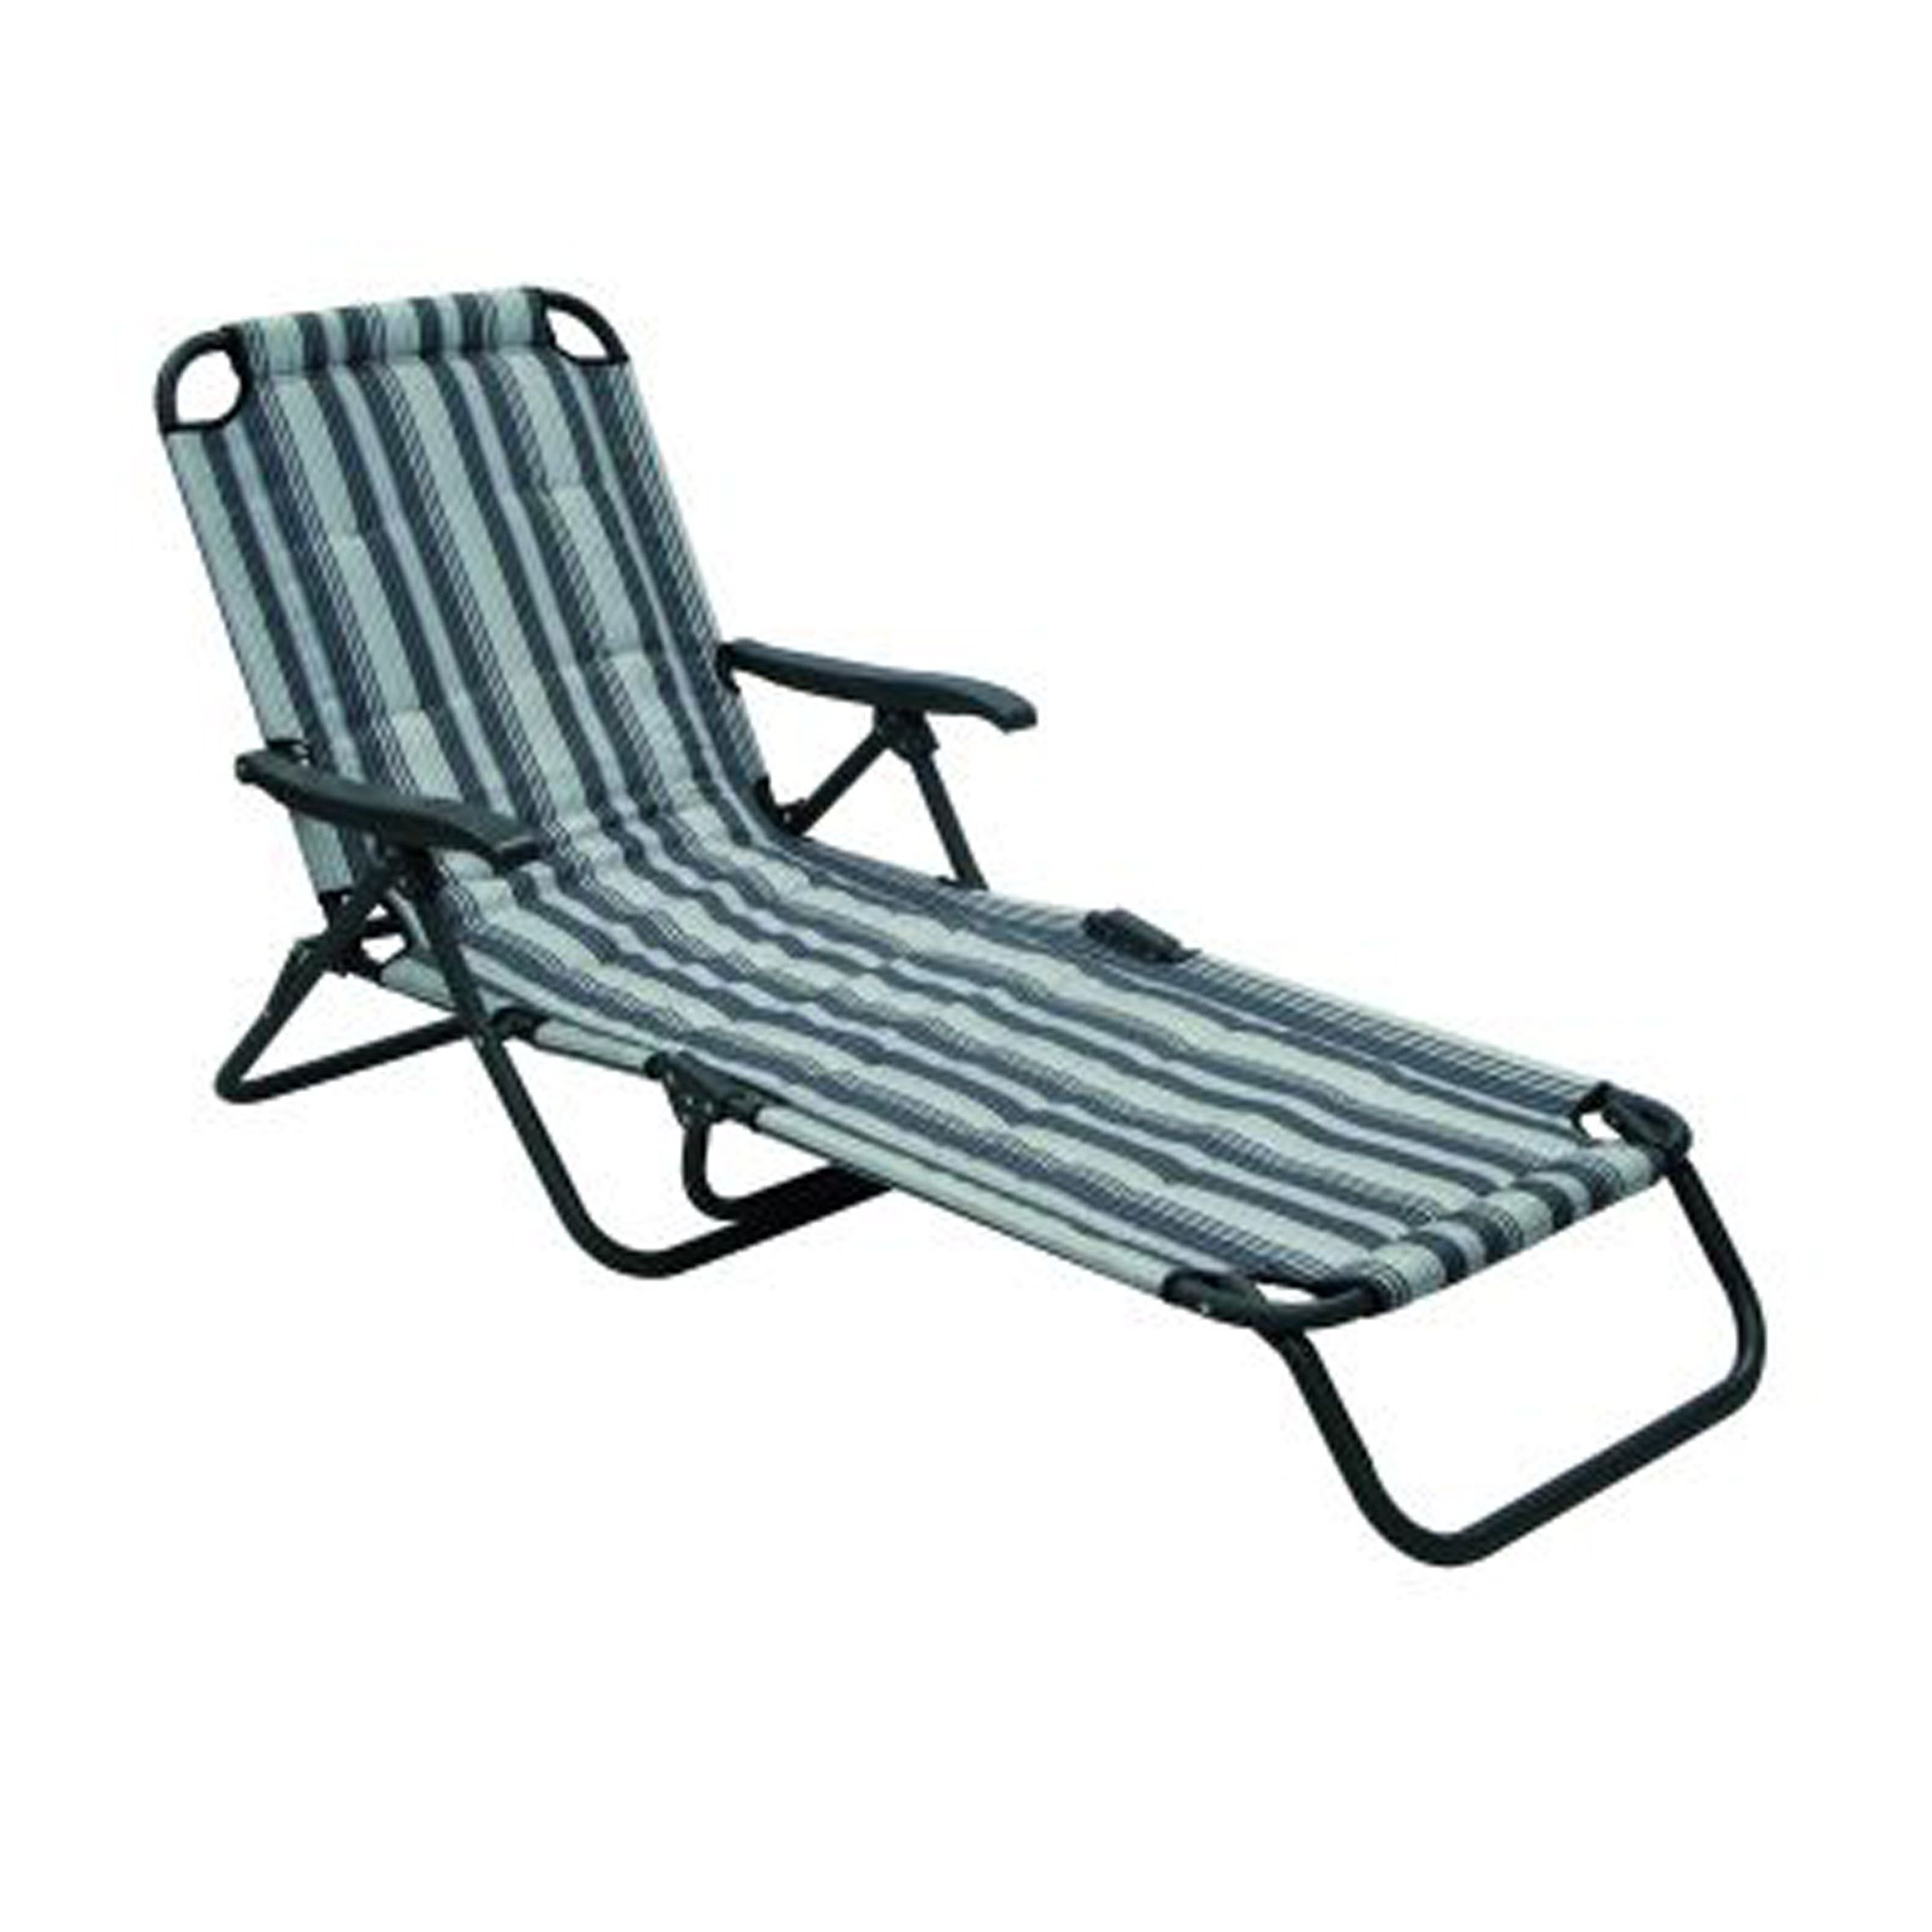 Popular Maki Outdoor Wood Chaise Lounges With Pin On Unit Stuff (Gallery 23 of 25)